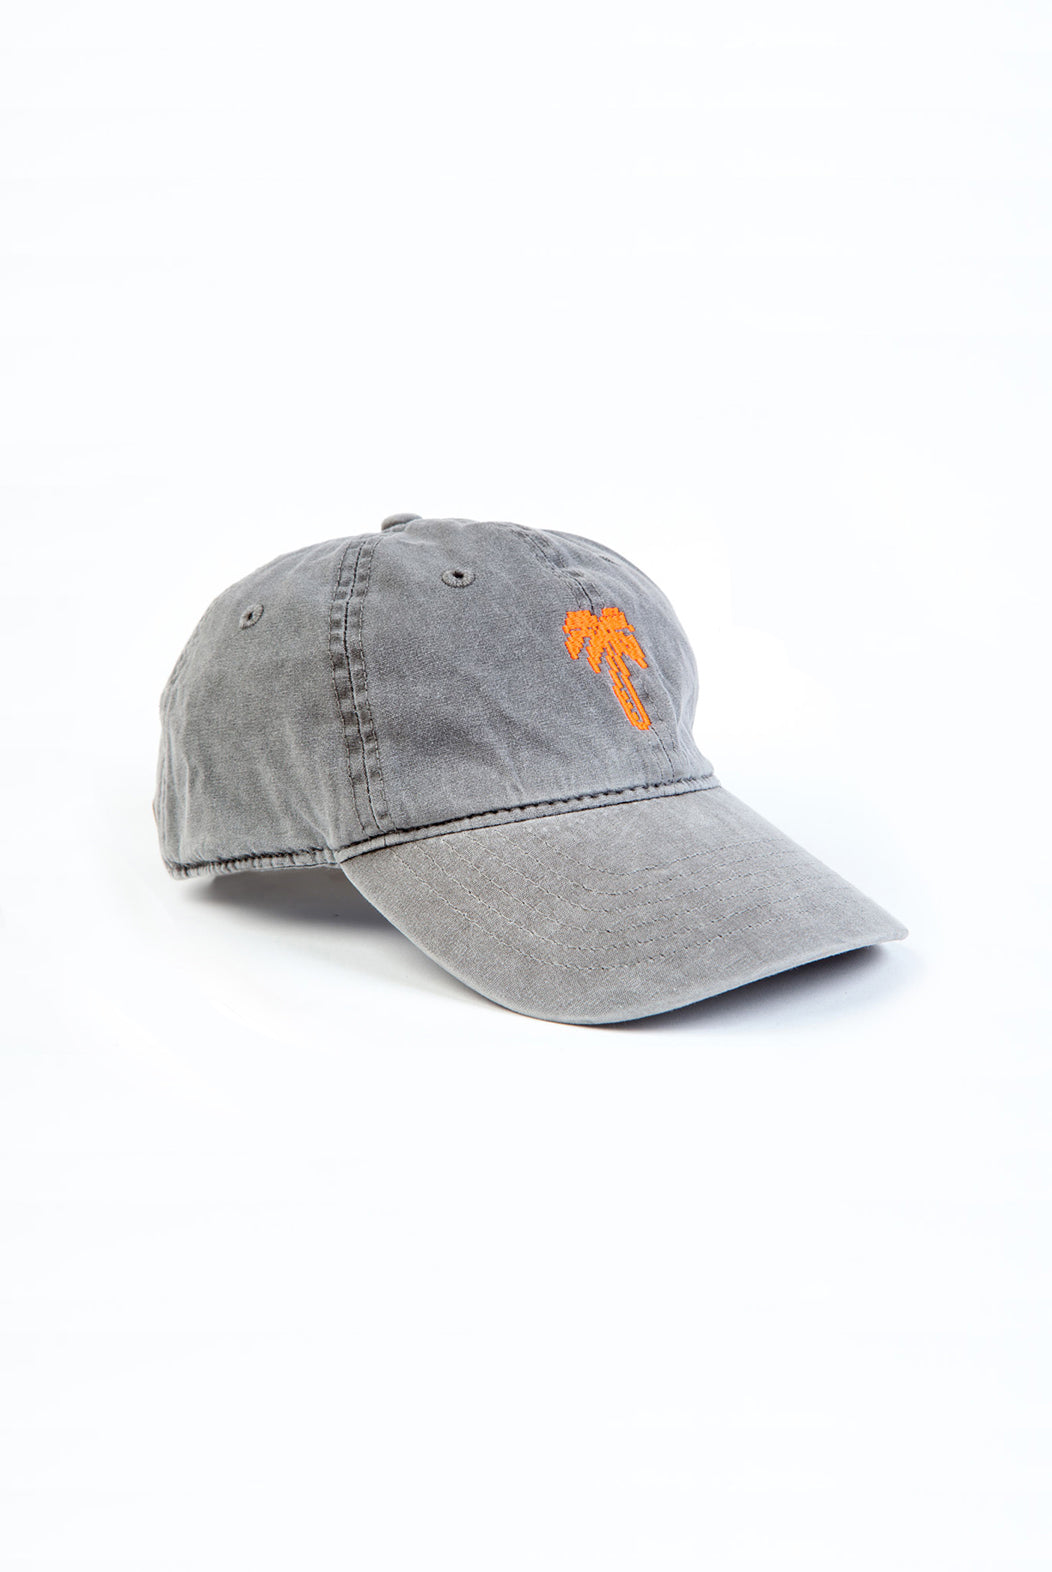 6 PANEL CAP EMBROIDED OKUH LOGO